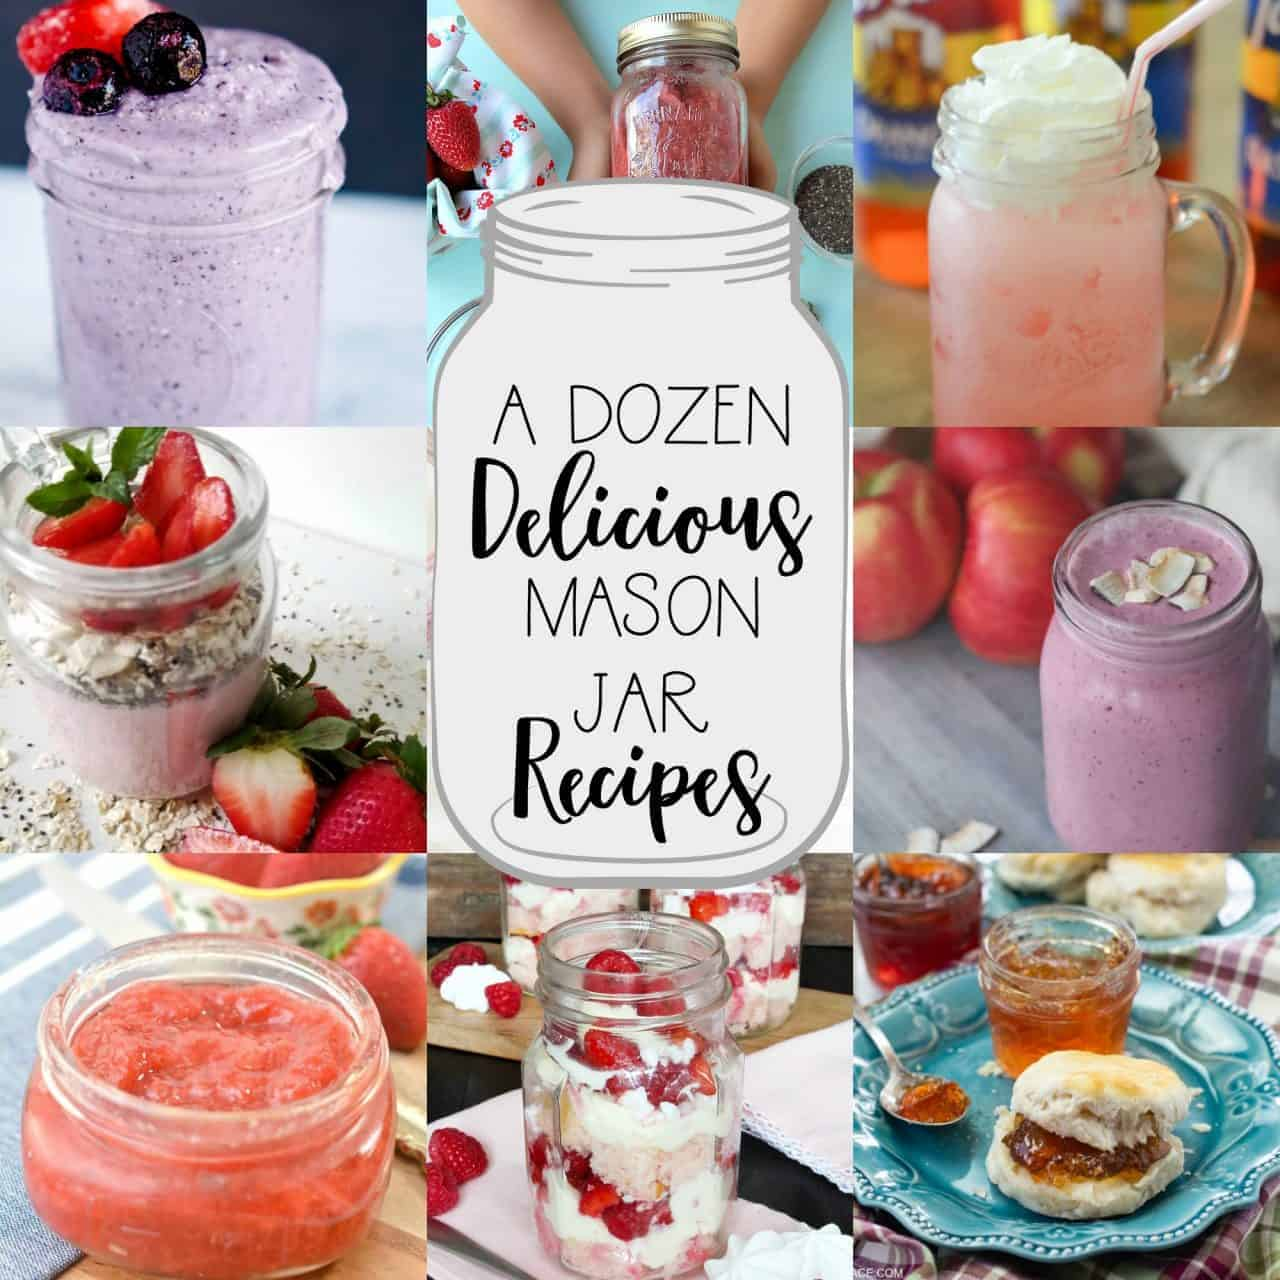 collage of desserts all served in a mason jar